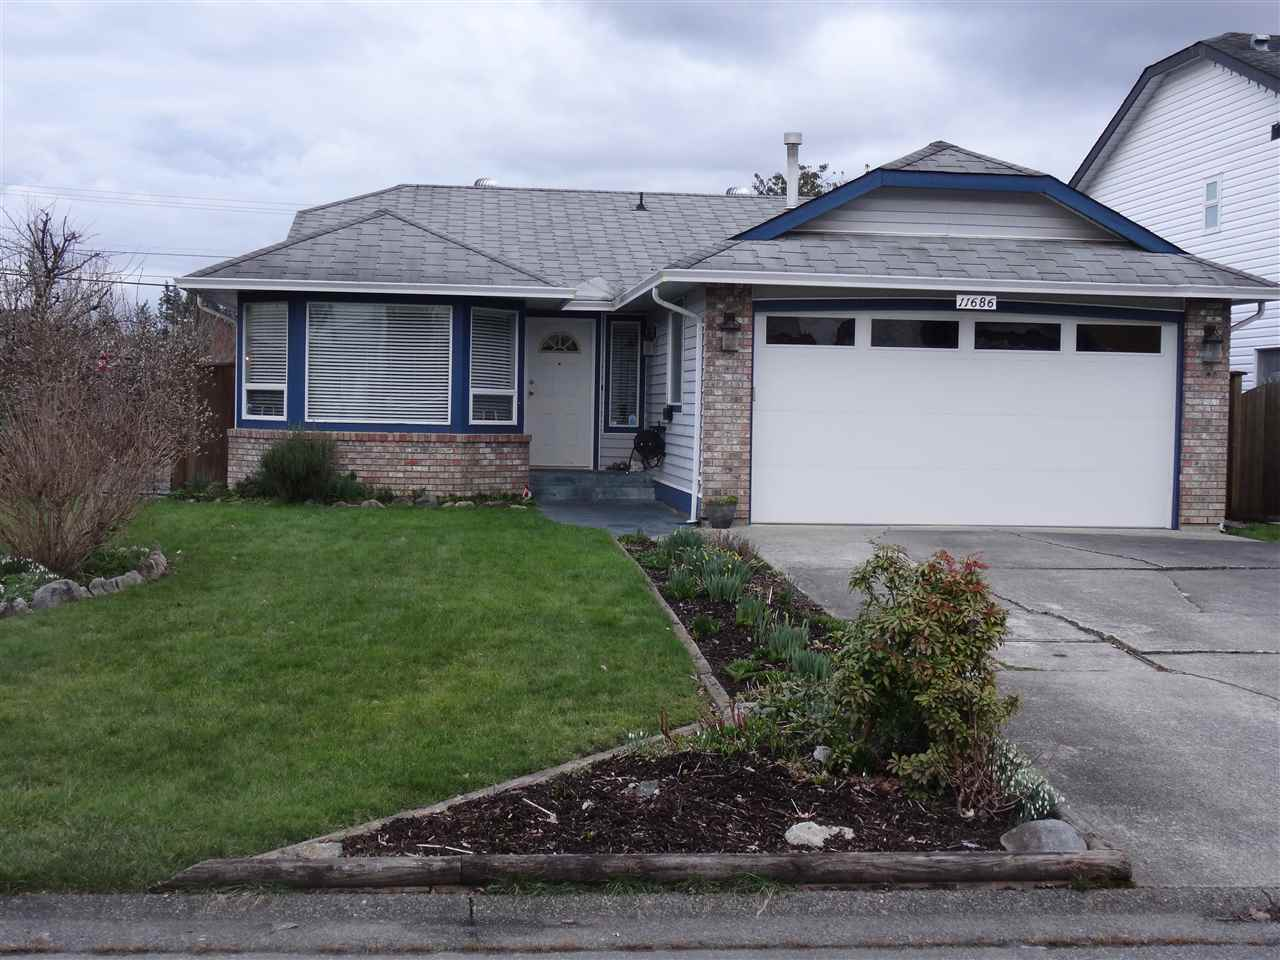 Main Photo: 11686 231B Street in Maple Ridge: East Central House for sale : MLS® # R2245373